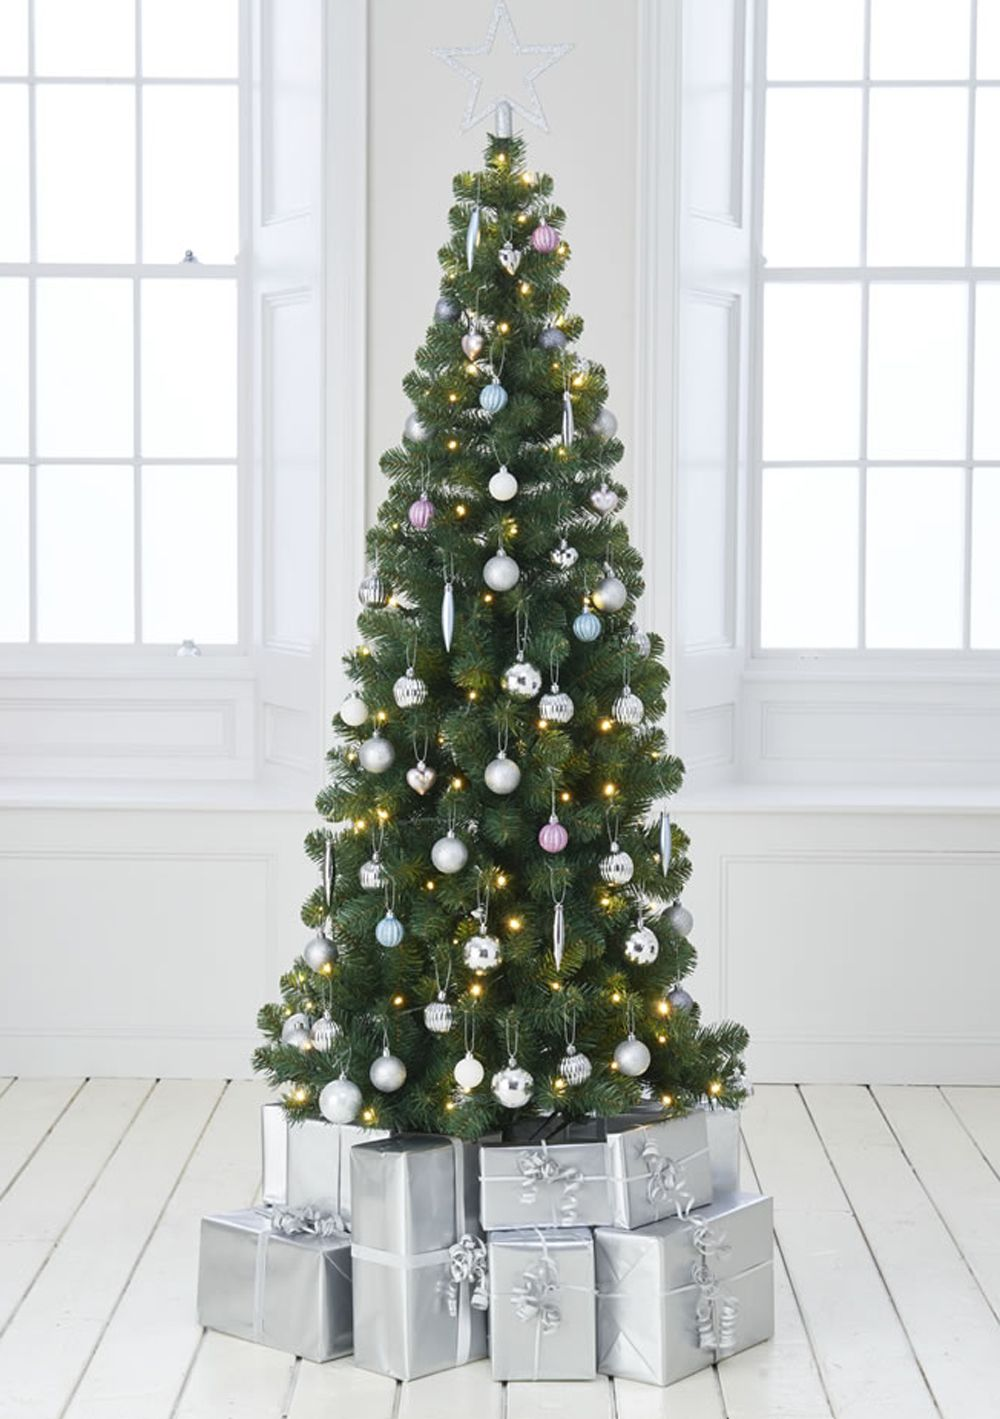 Best Artificial Christmas Trees 2019.Best Artificial Christmas Trees To Dress Up The Festive